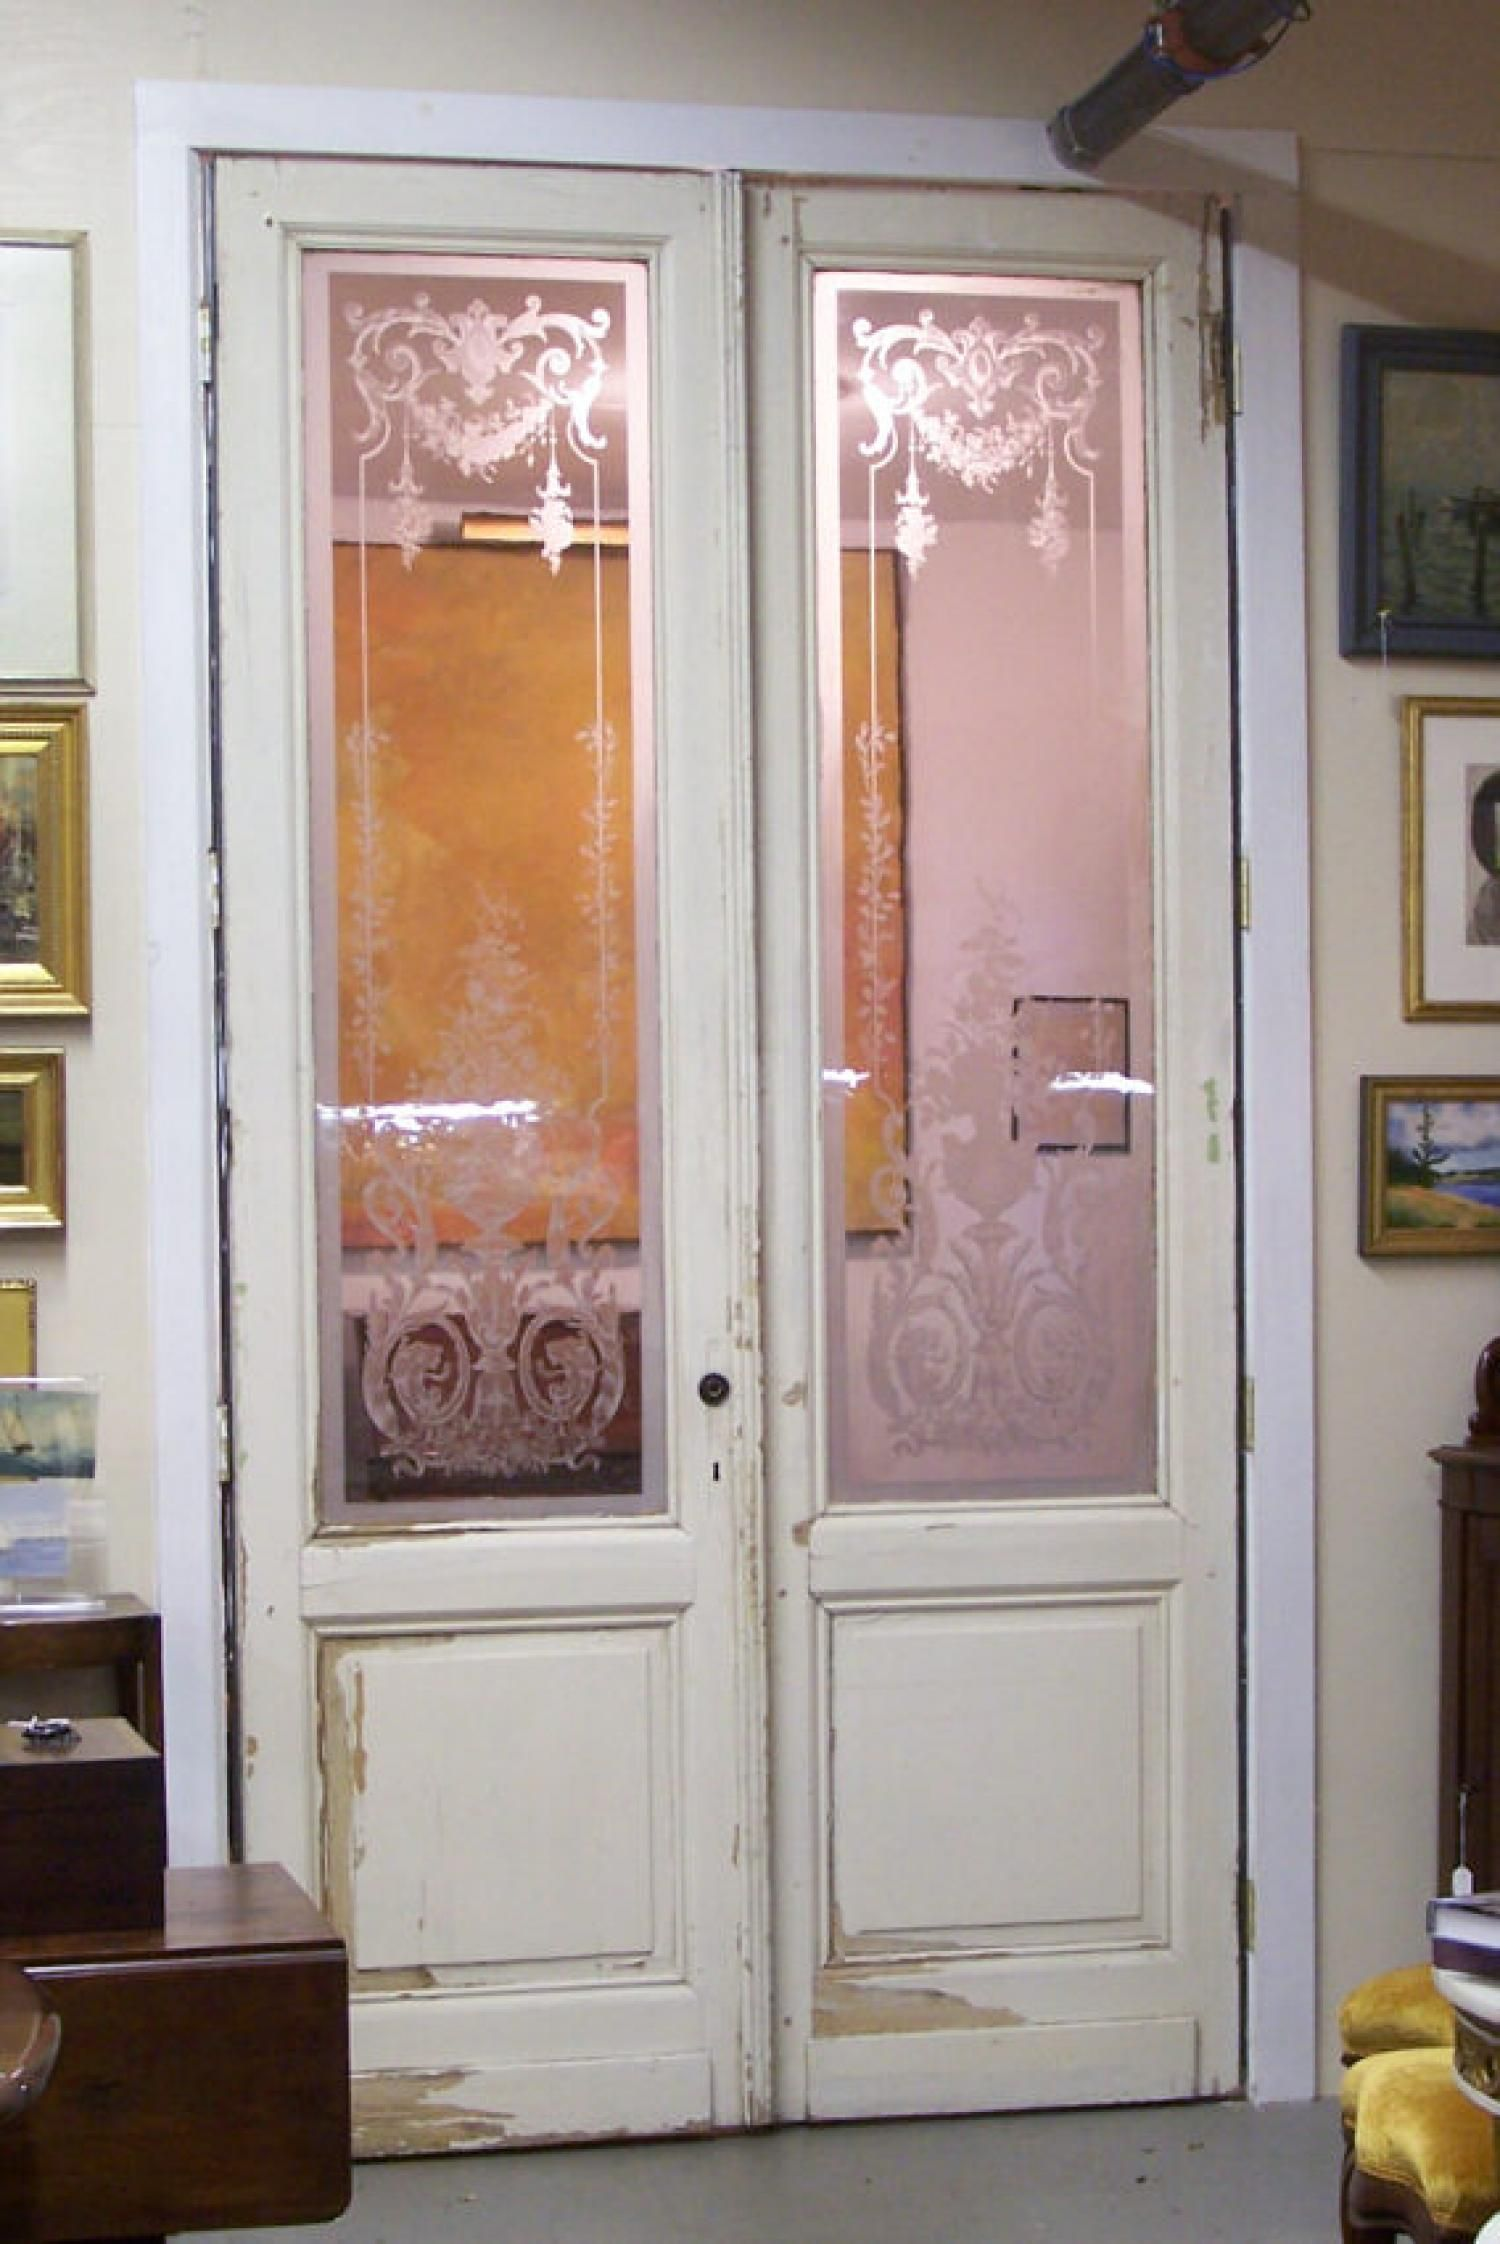 Pair Of French Blown Glass Doors From Pariseach Door Measures 111 Inches Tall 30 Inches Wide And Antique French Doors Etched Glass Door French Doors Interior